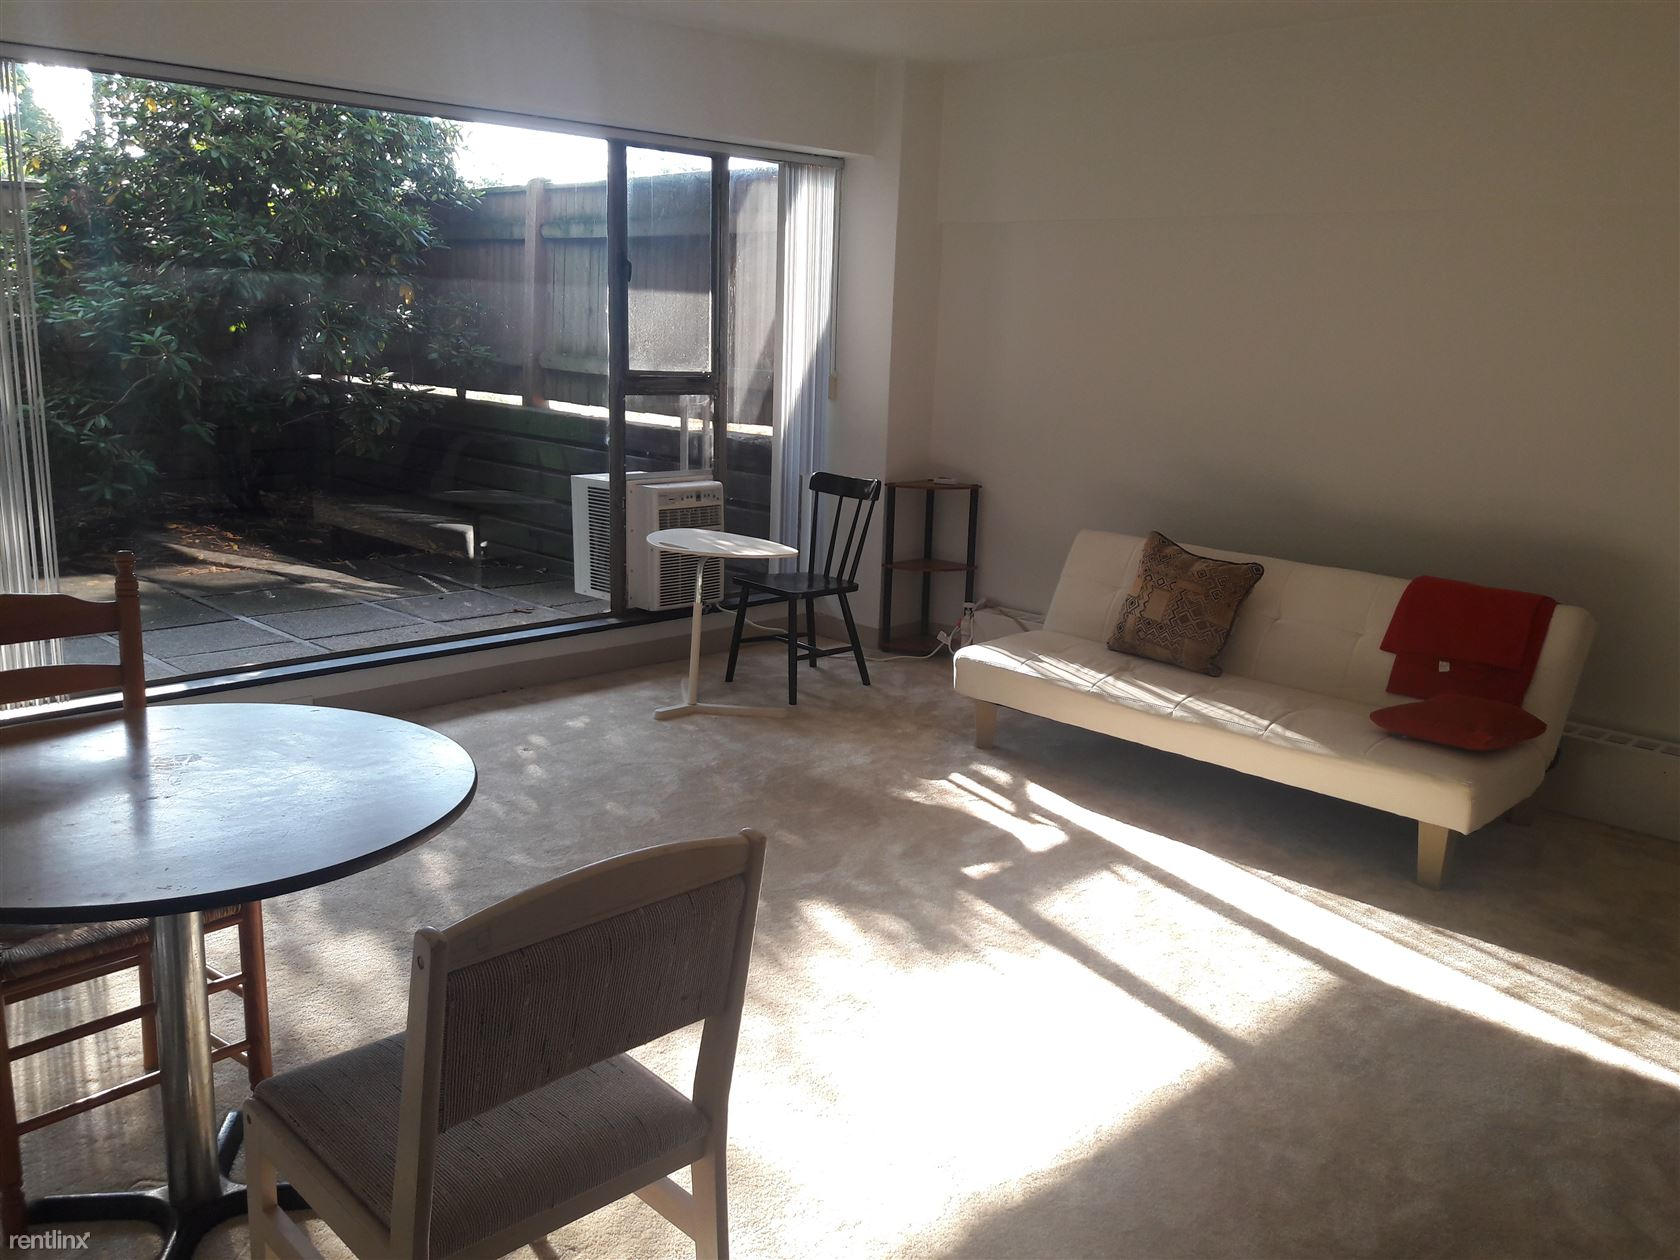 Sunny and beautiful living room.